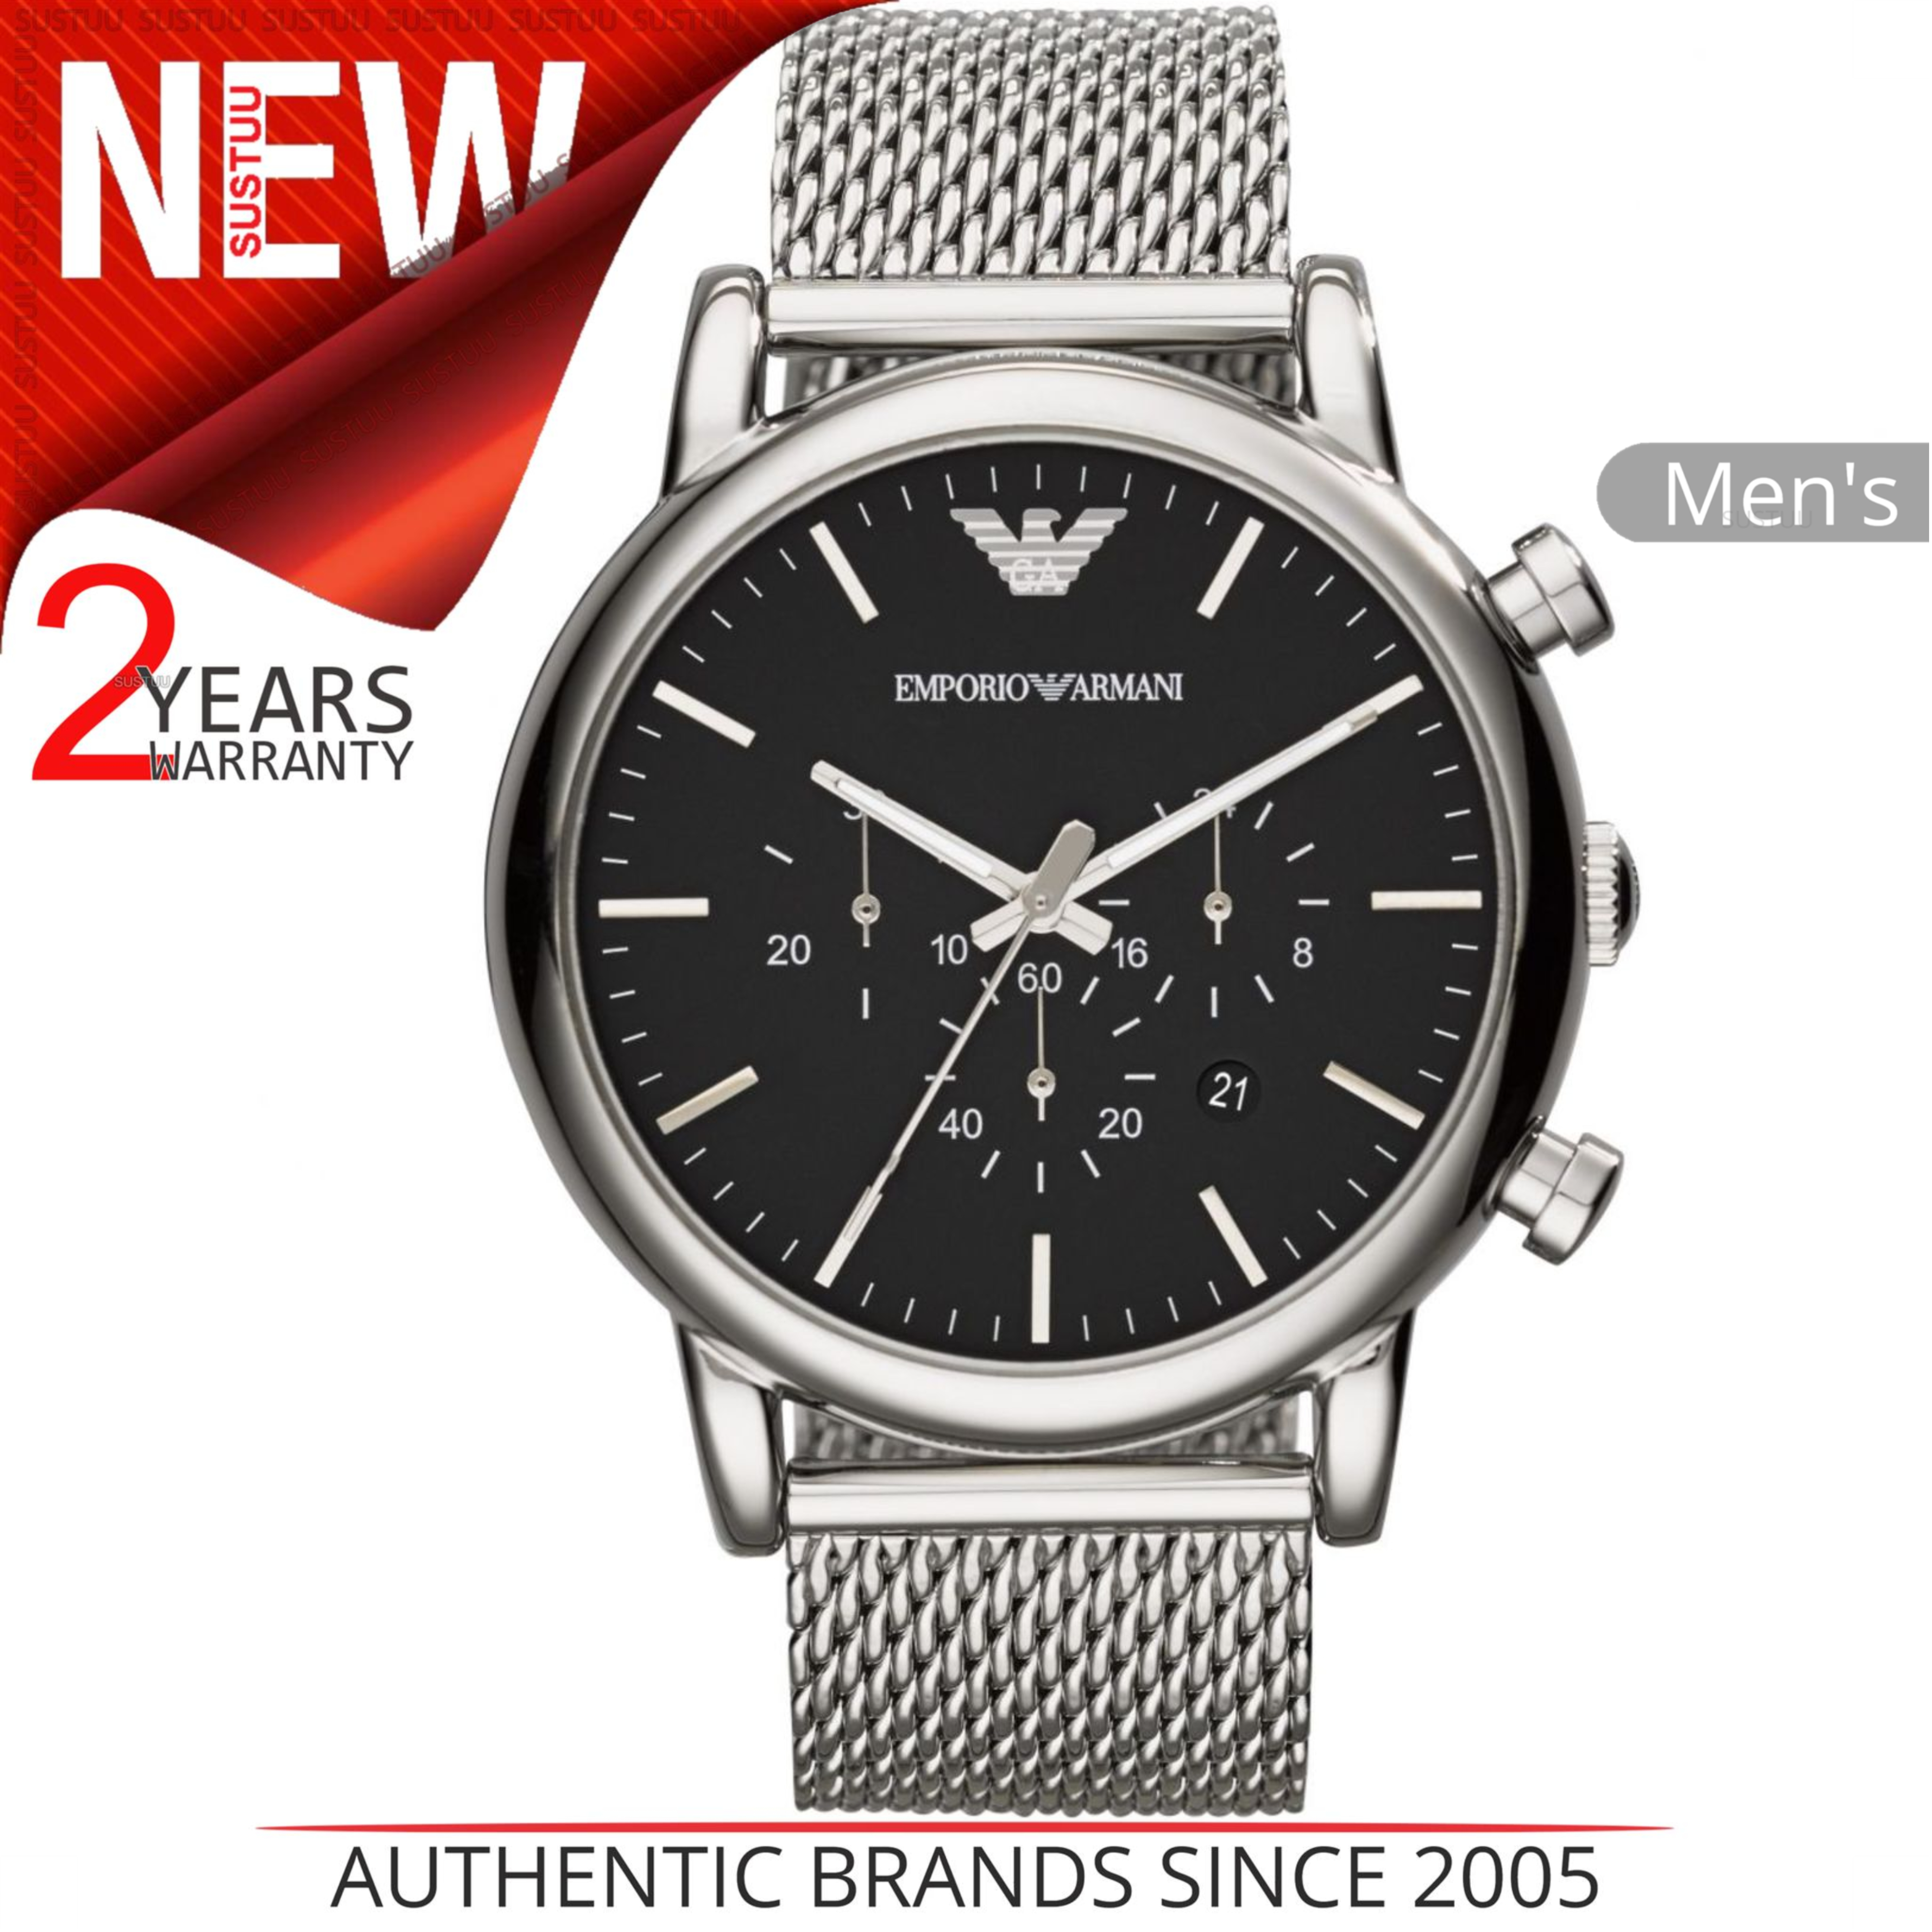 397091fabc5 Sentinel Emporio Armani Classic Men s Watch│Chronograph Black  Dial│Stainless Steel│AR1808